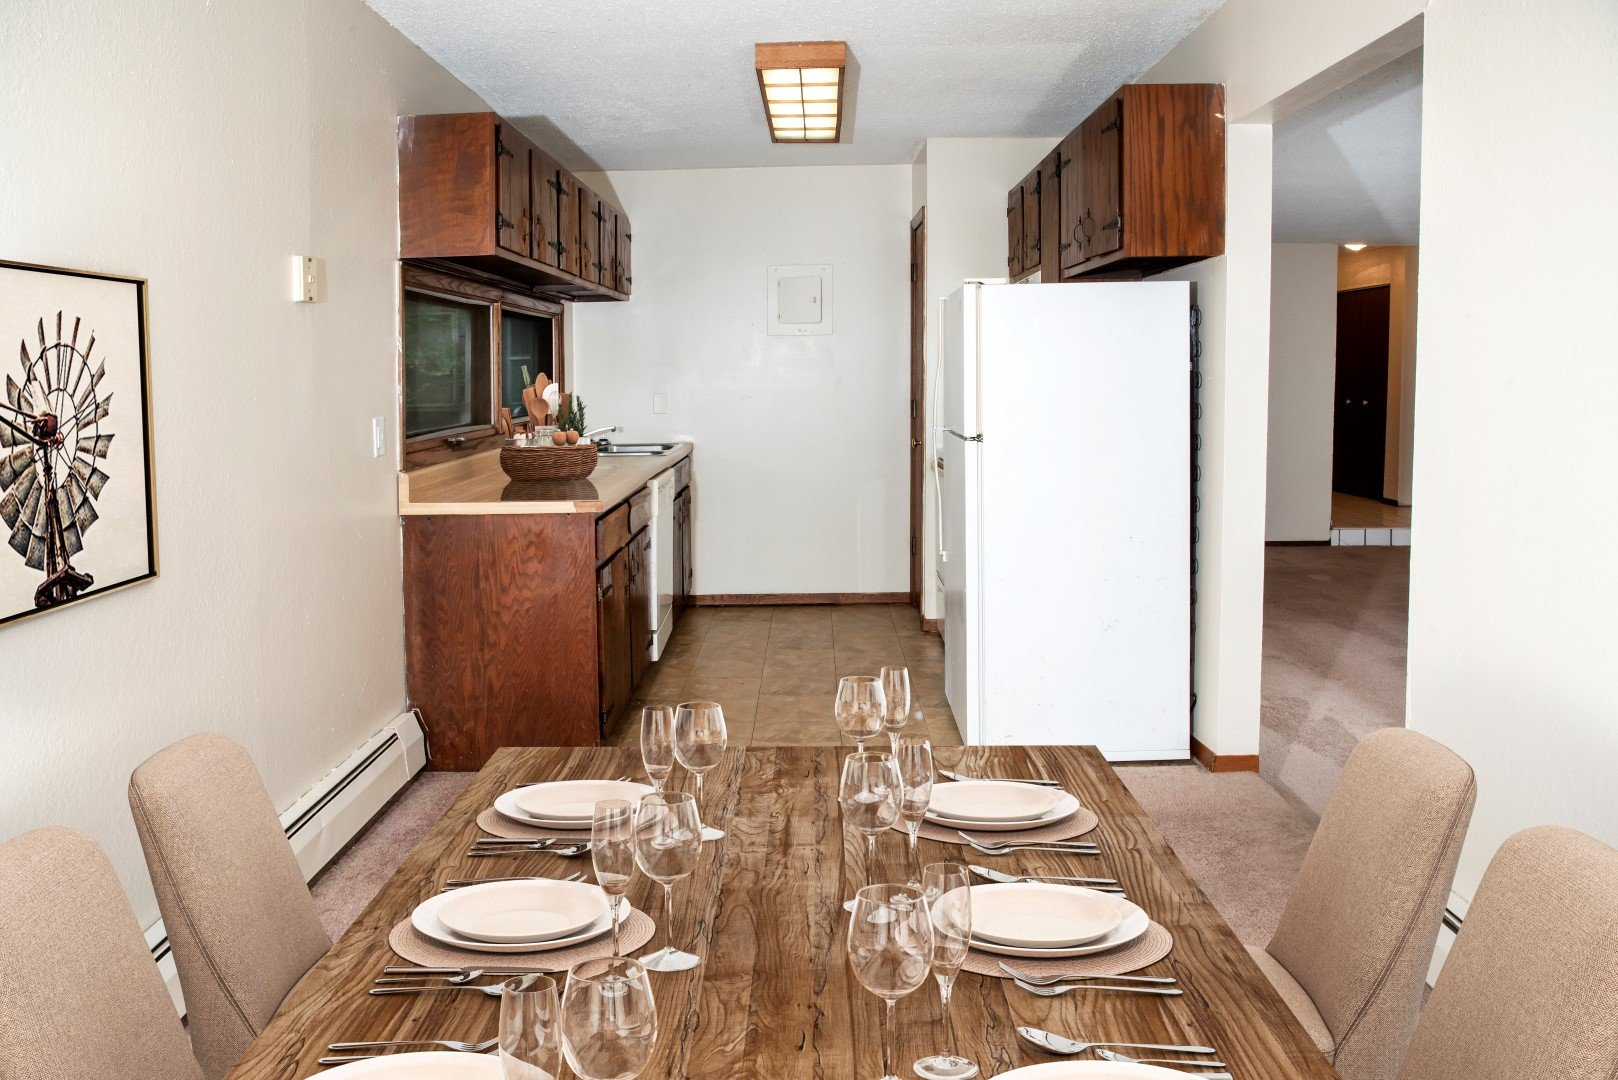 Bass Lake Crossing kitchen and dining room